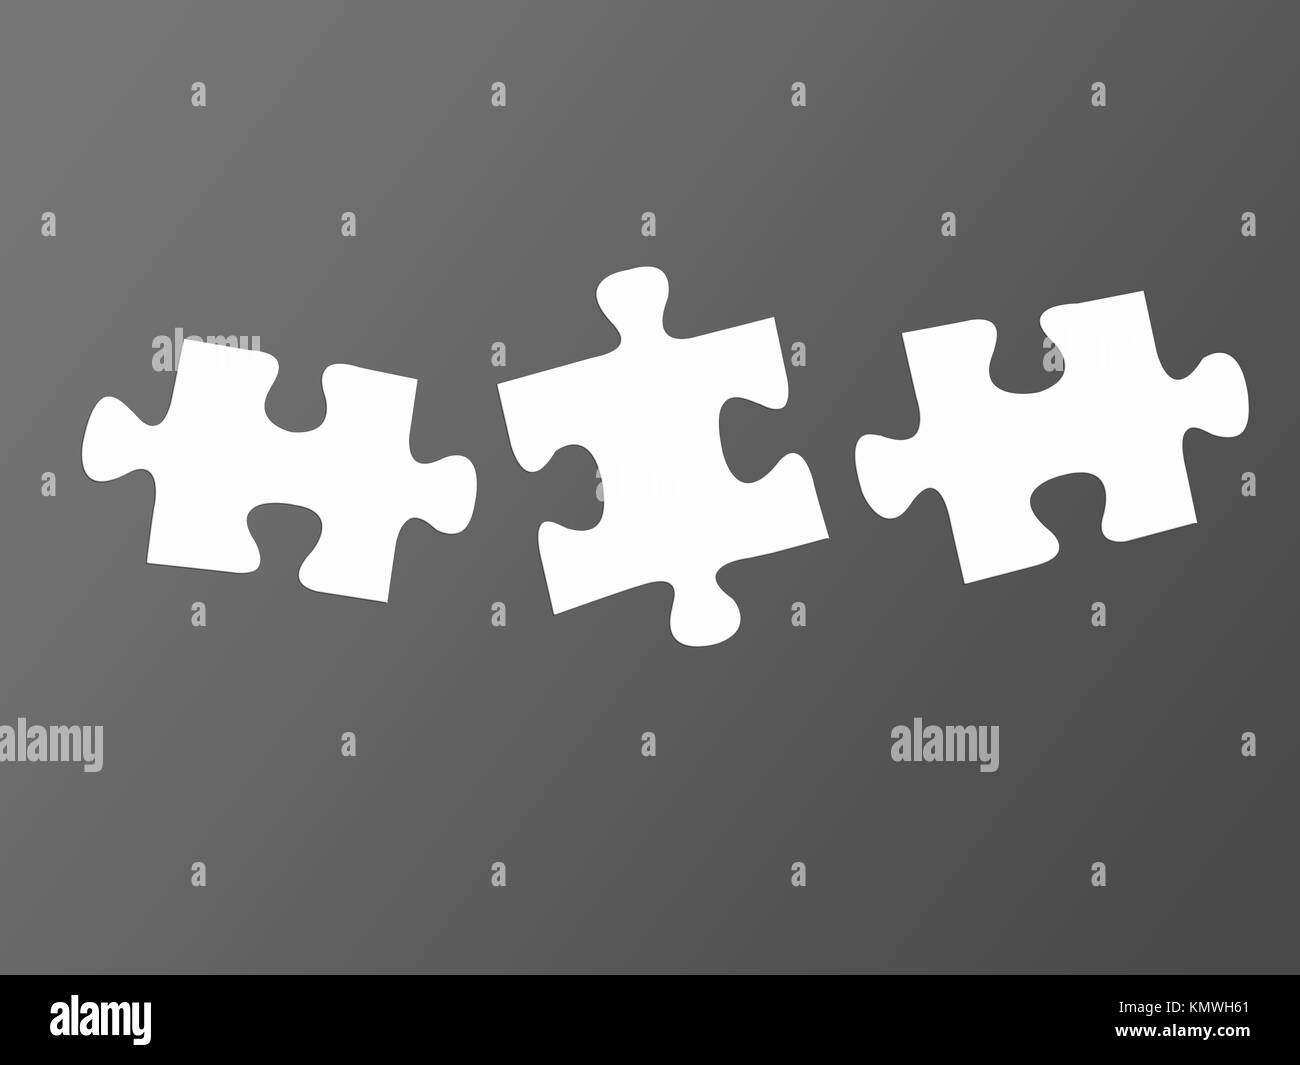 Jigsaw Puzzle Pieces Background Vector Stock Photos & Jigsaw Puzzle ...